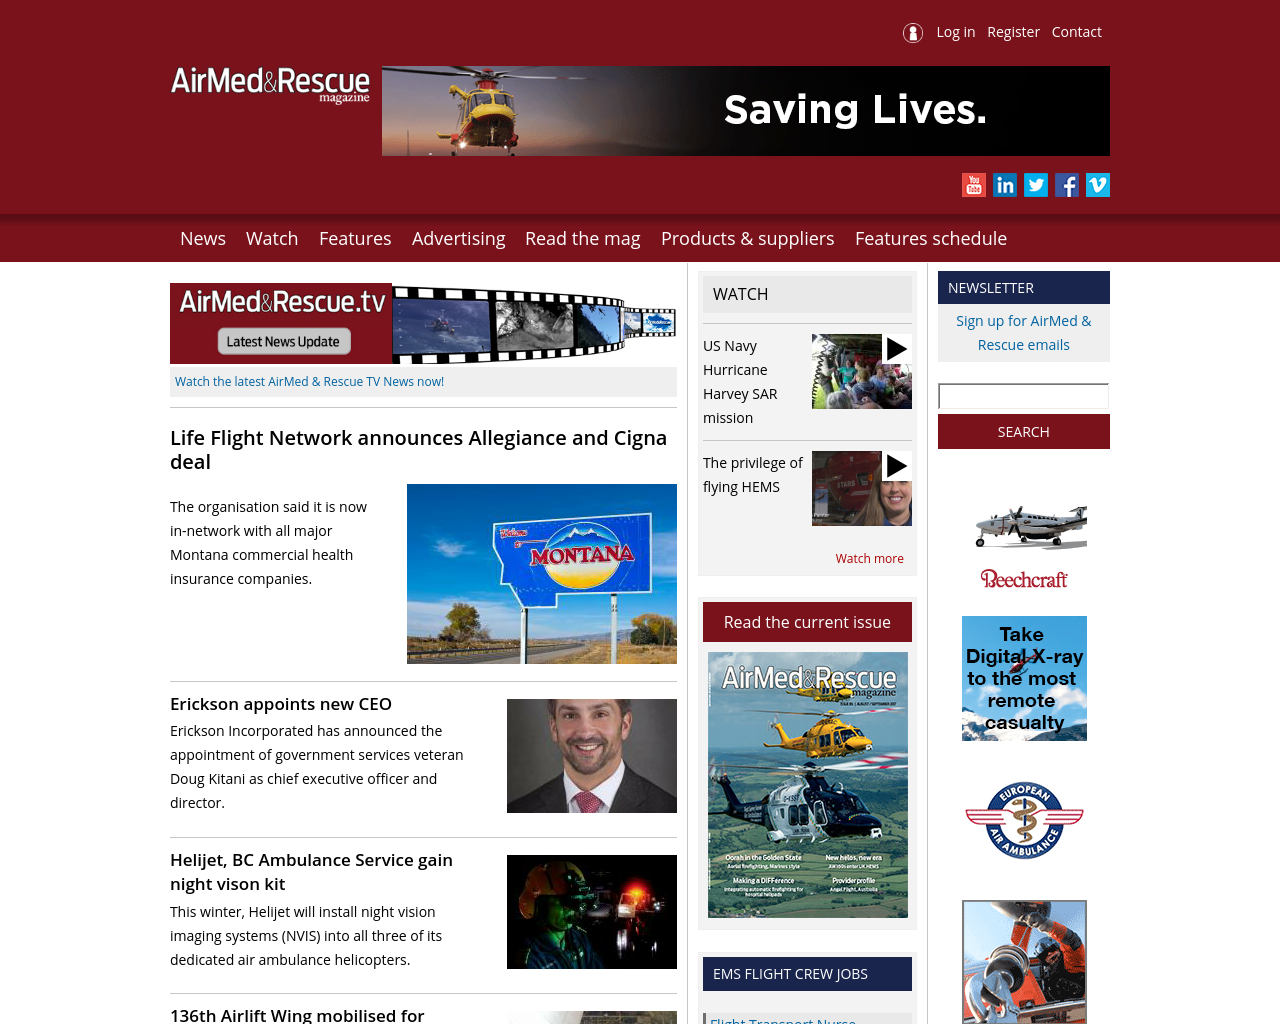 AirMed&Rescue-Advertising-Reviews-Pricing